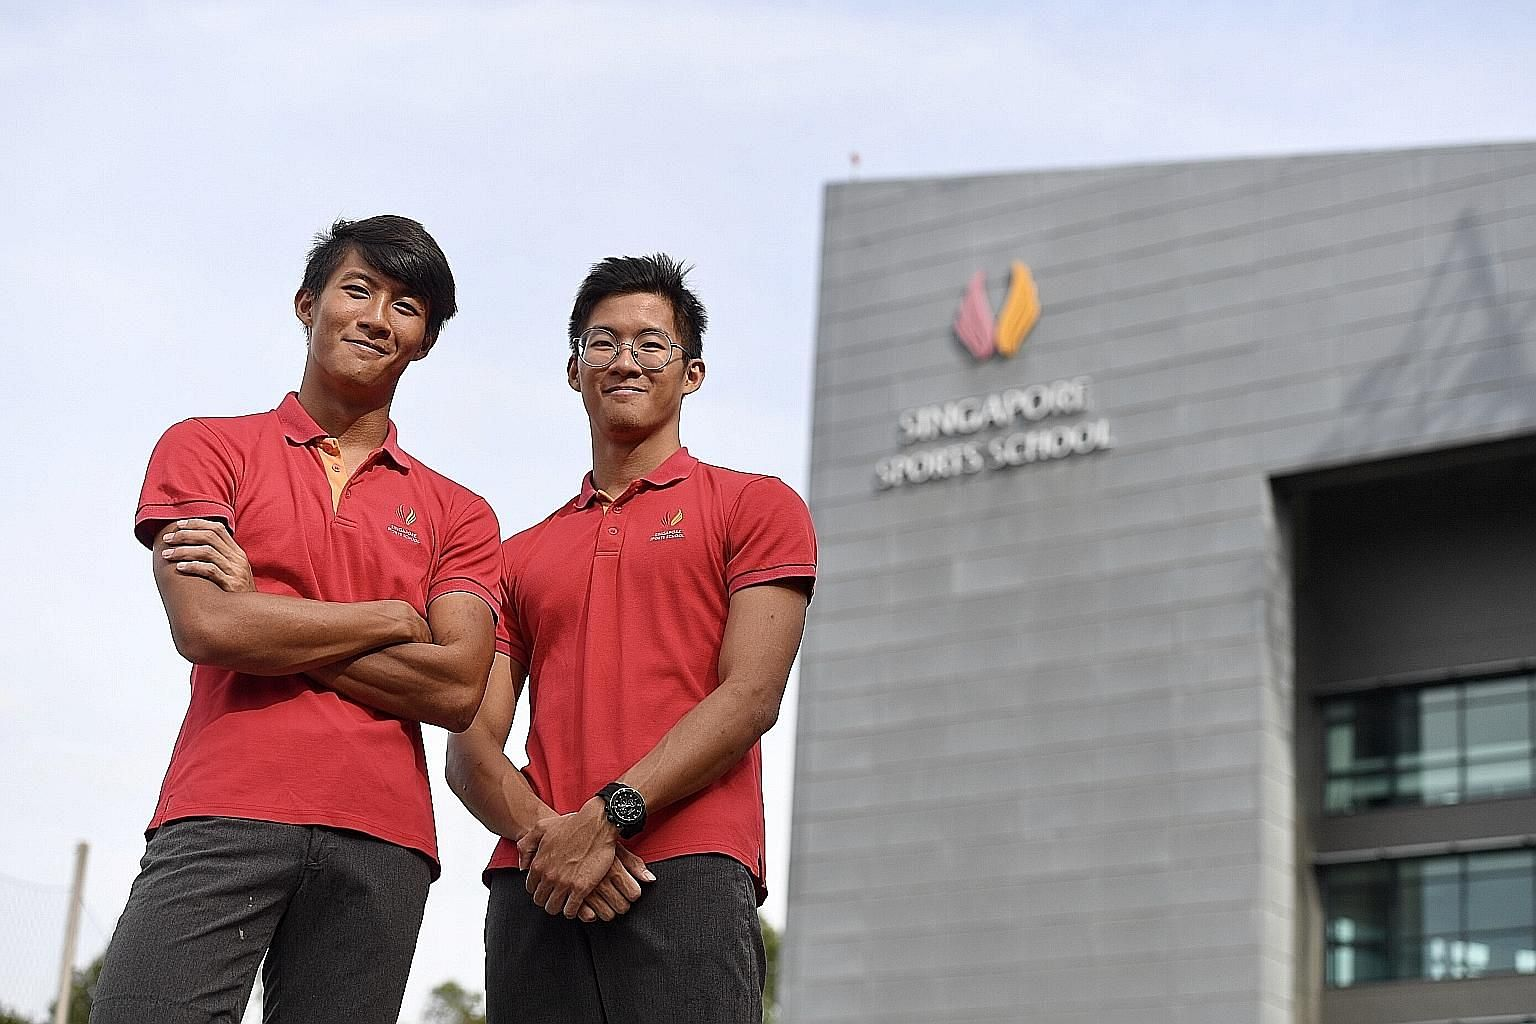 Twins Chong Wei Guan (at left) and Wei Kit are among the Singapore Sports School's top scorers. Wei Guan scored 43 points in the International Baccalaureate exam while Wei Kit scored 44 points, out of a maximum of 45.